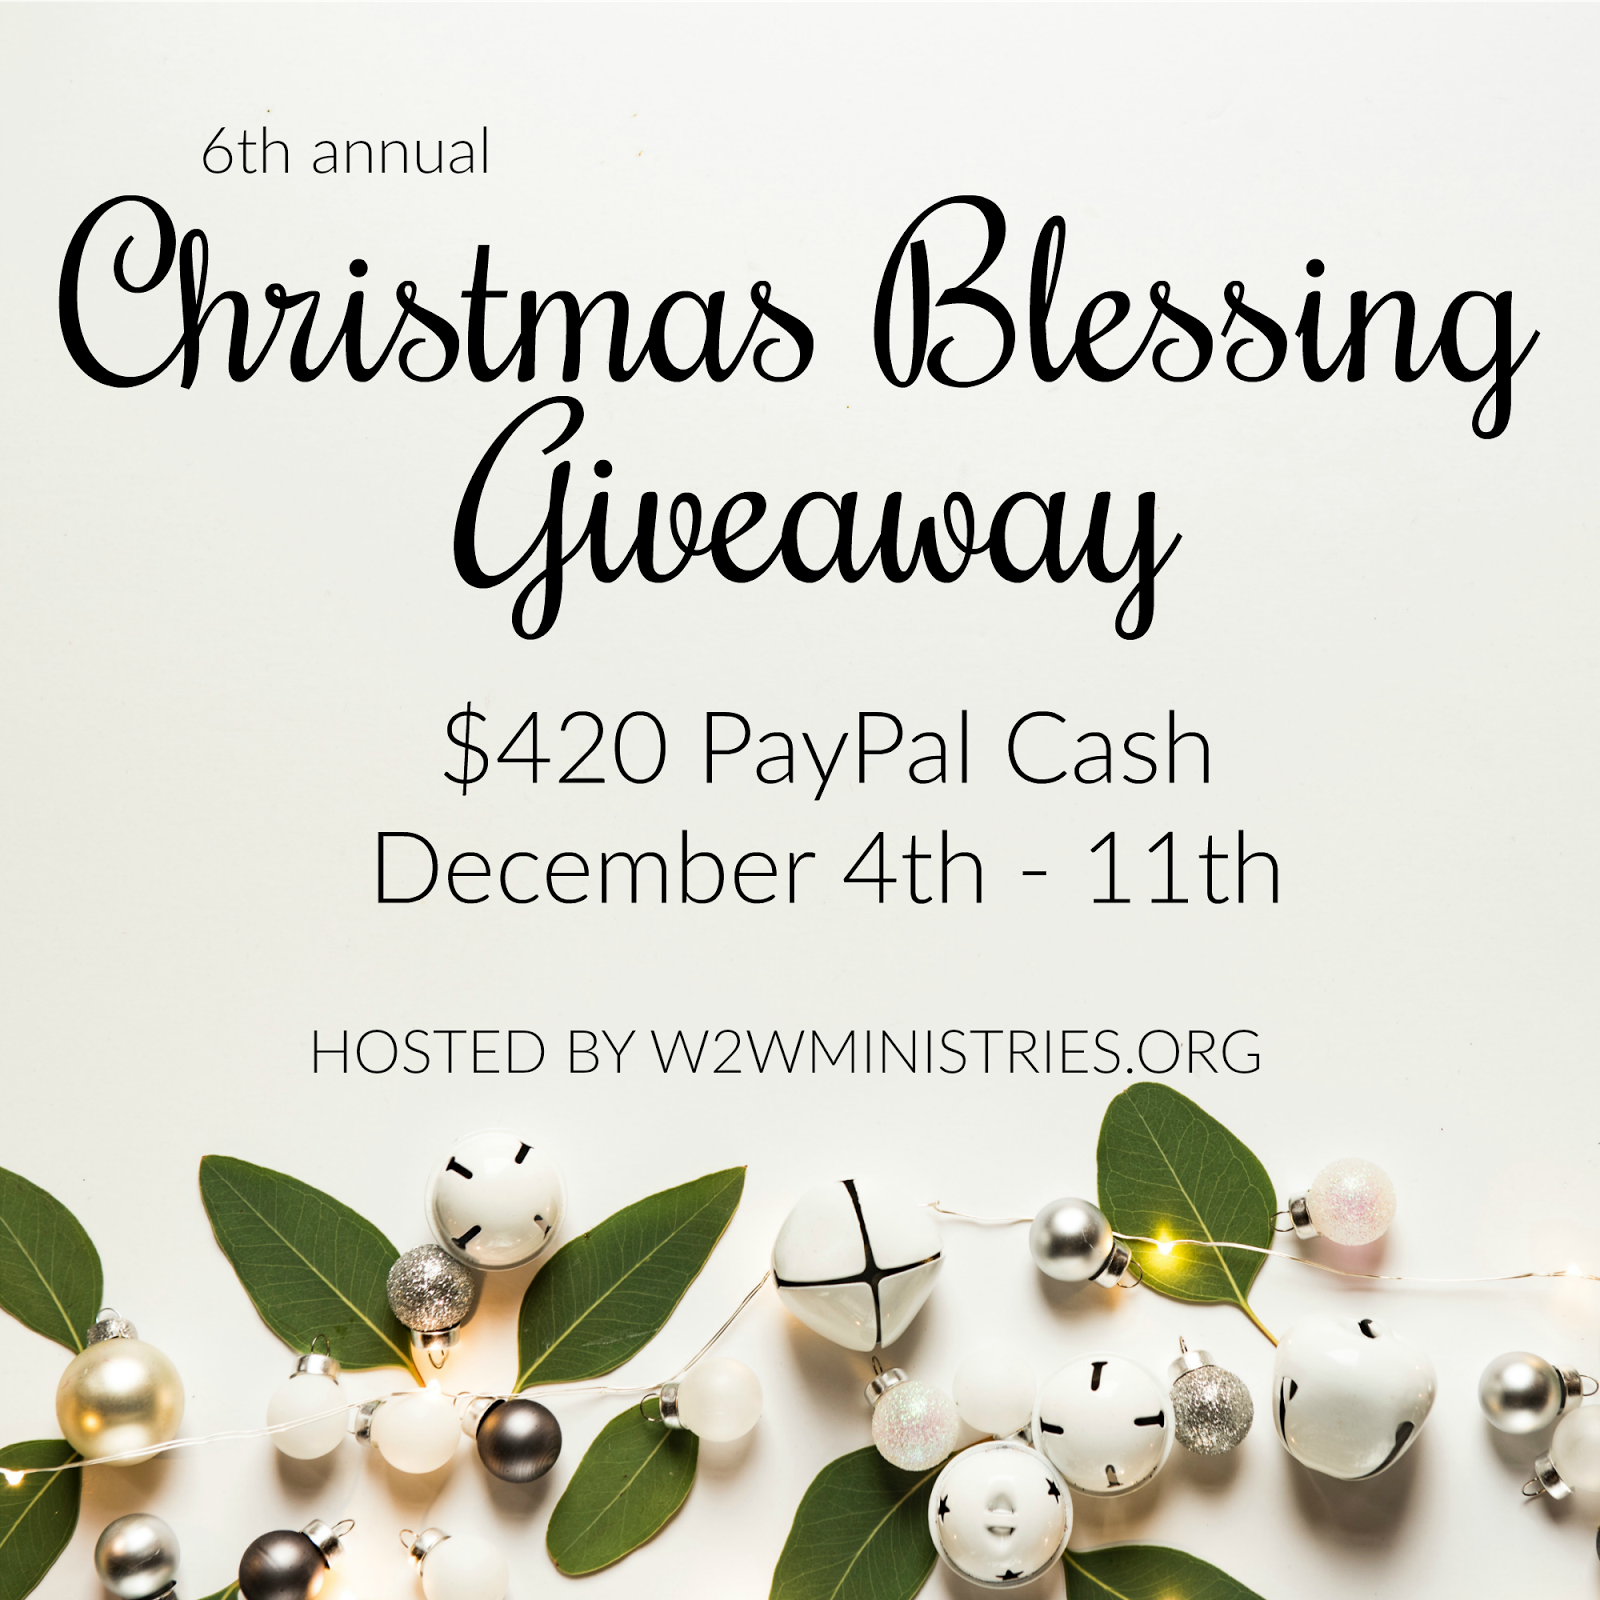 Just following Jesus in my real life...: Christmas Blessing Giveaway ...